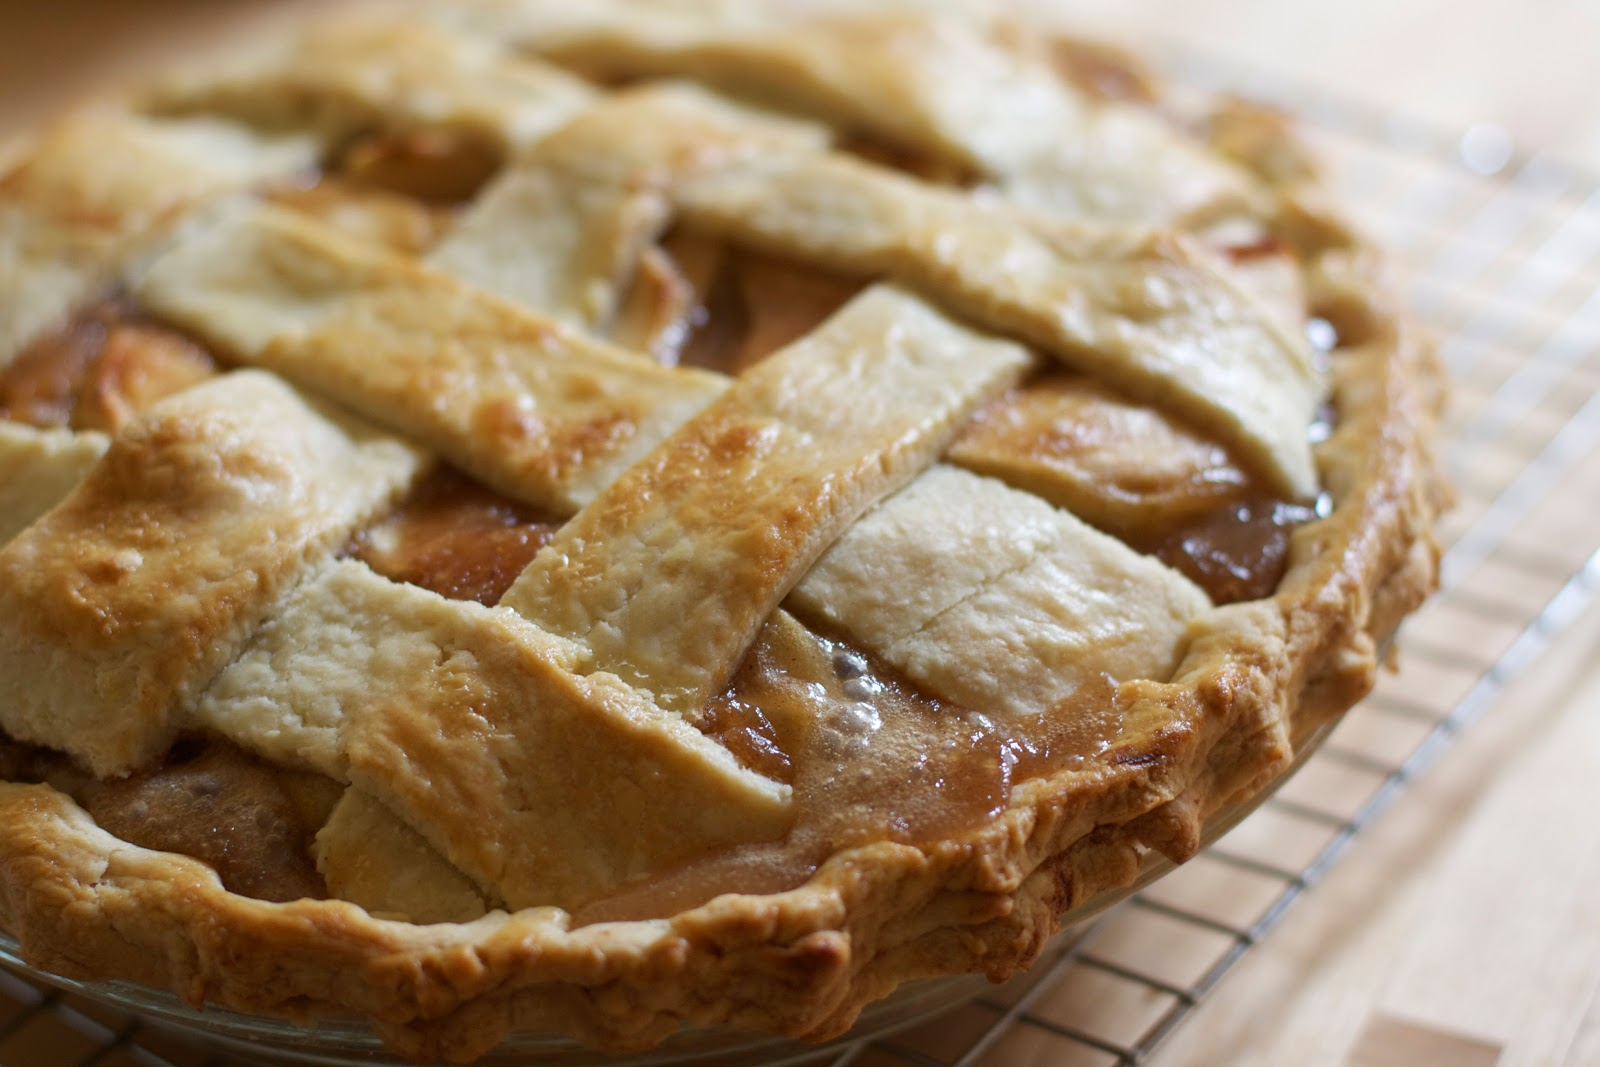 Close up shot of an apple pie with lattice crust